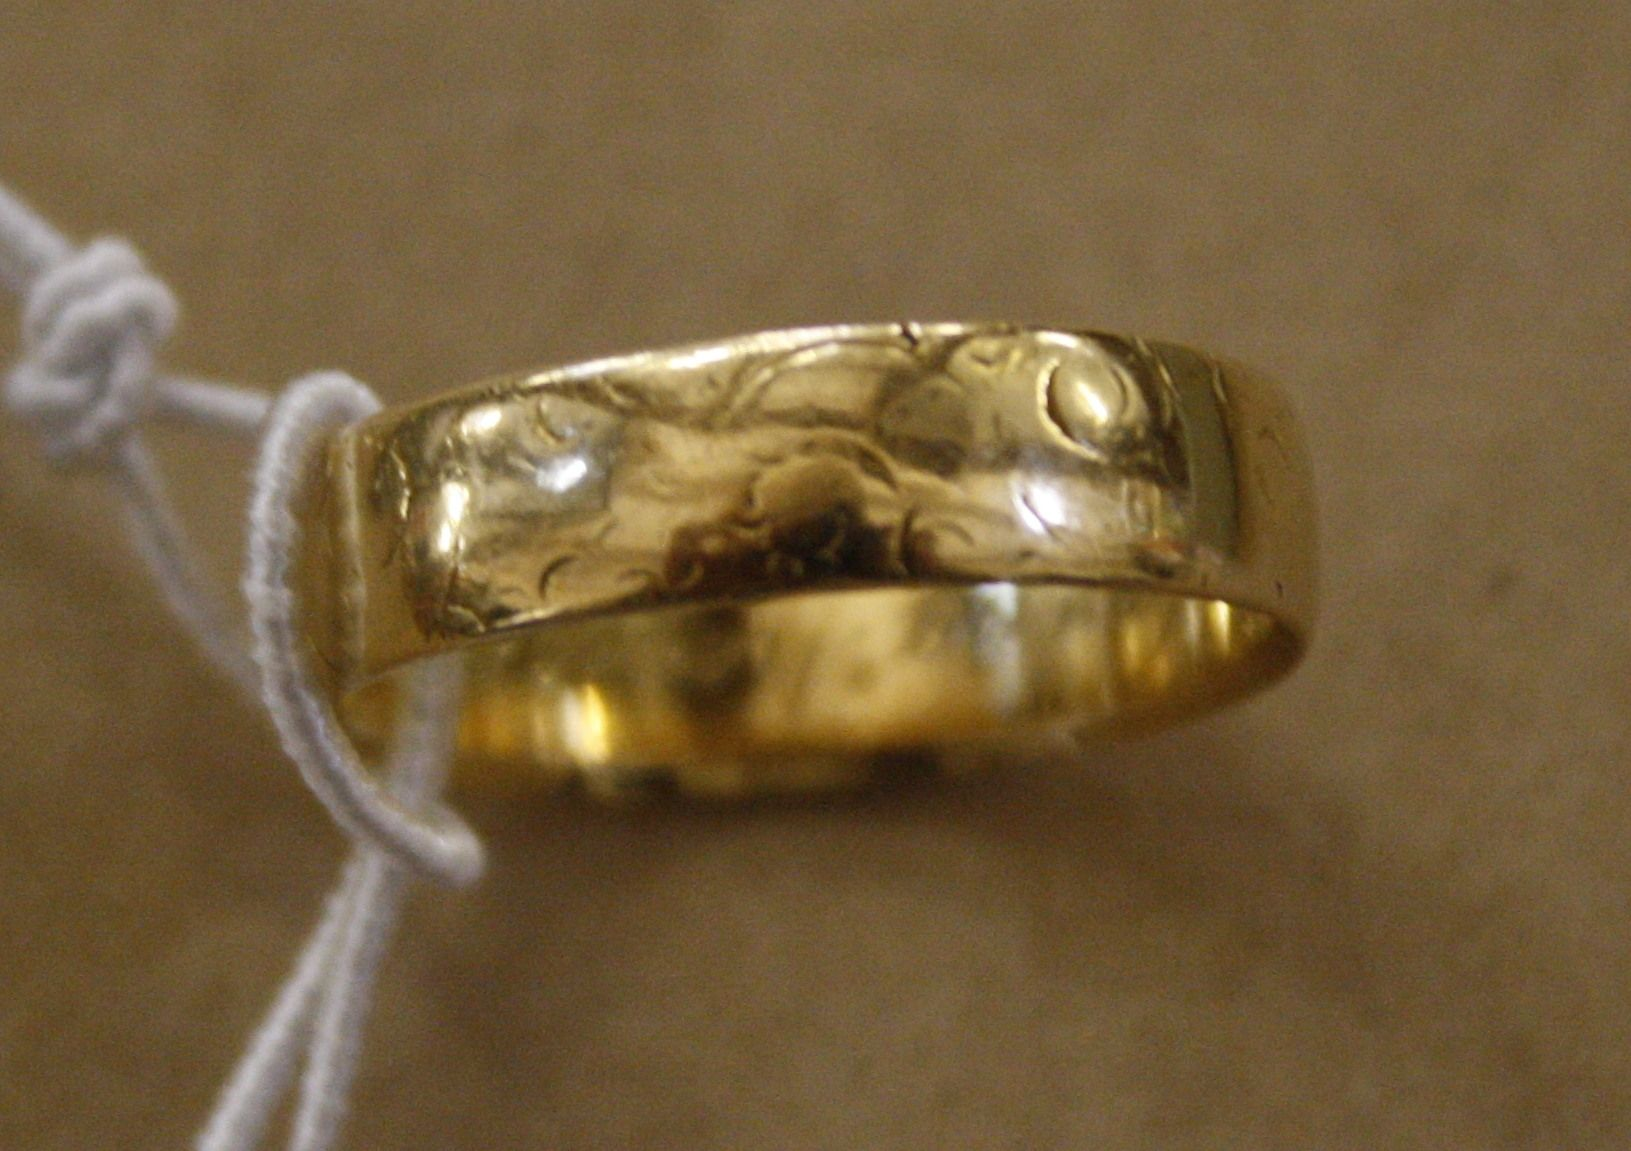 An 18ct gold wedding band, 3.6g approx.